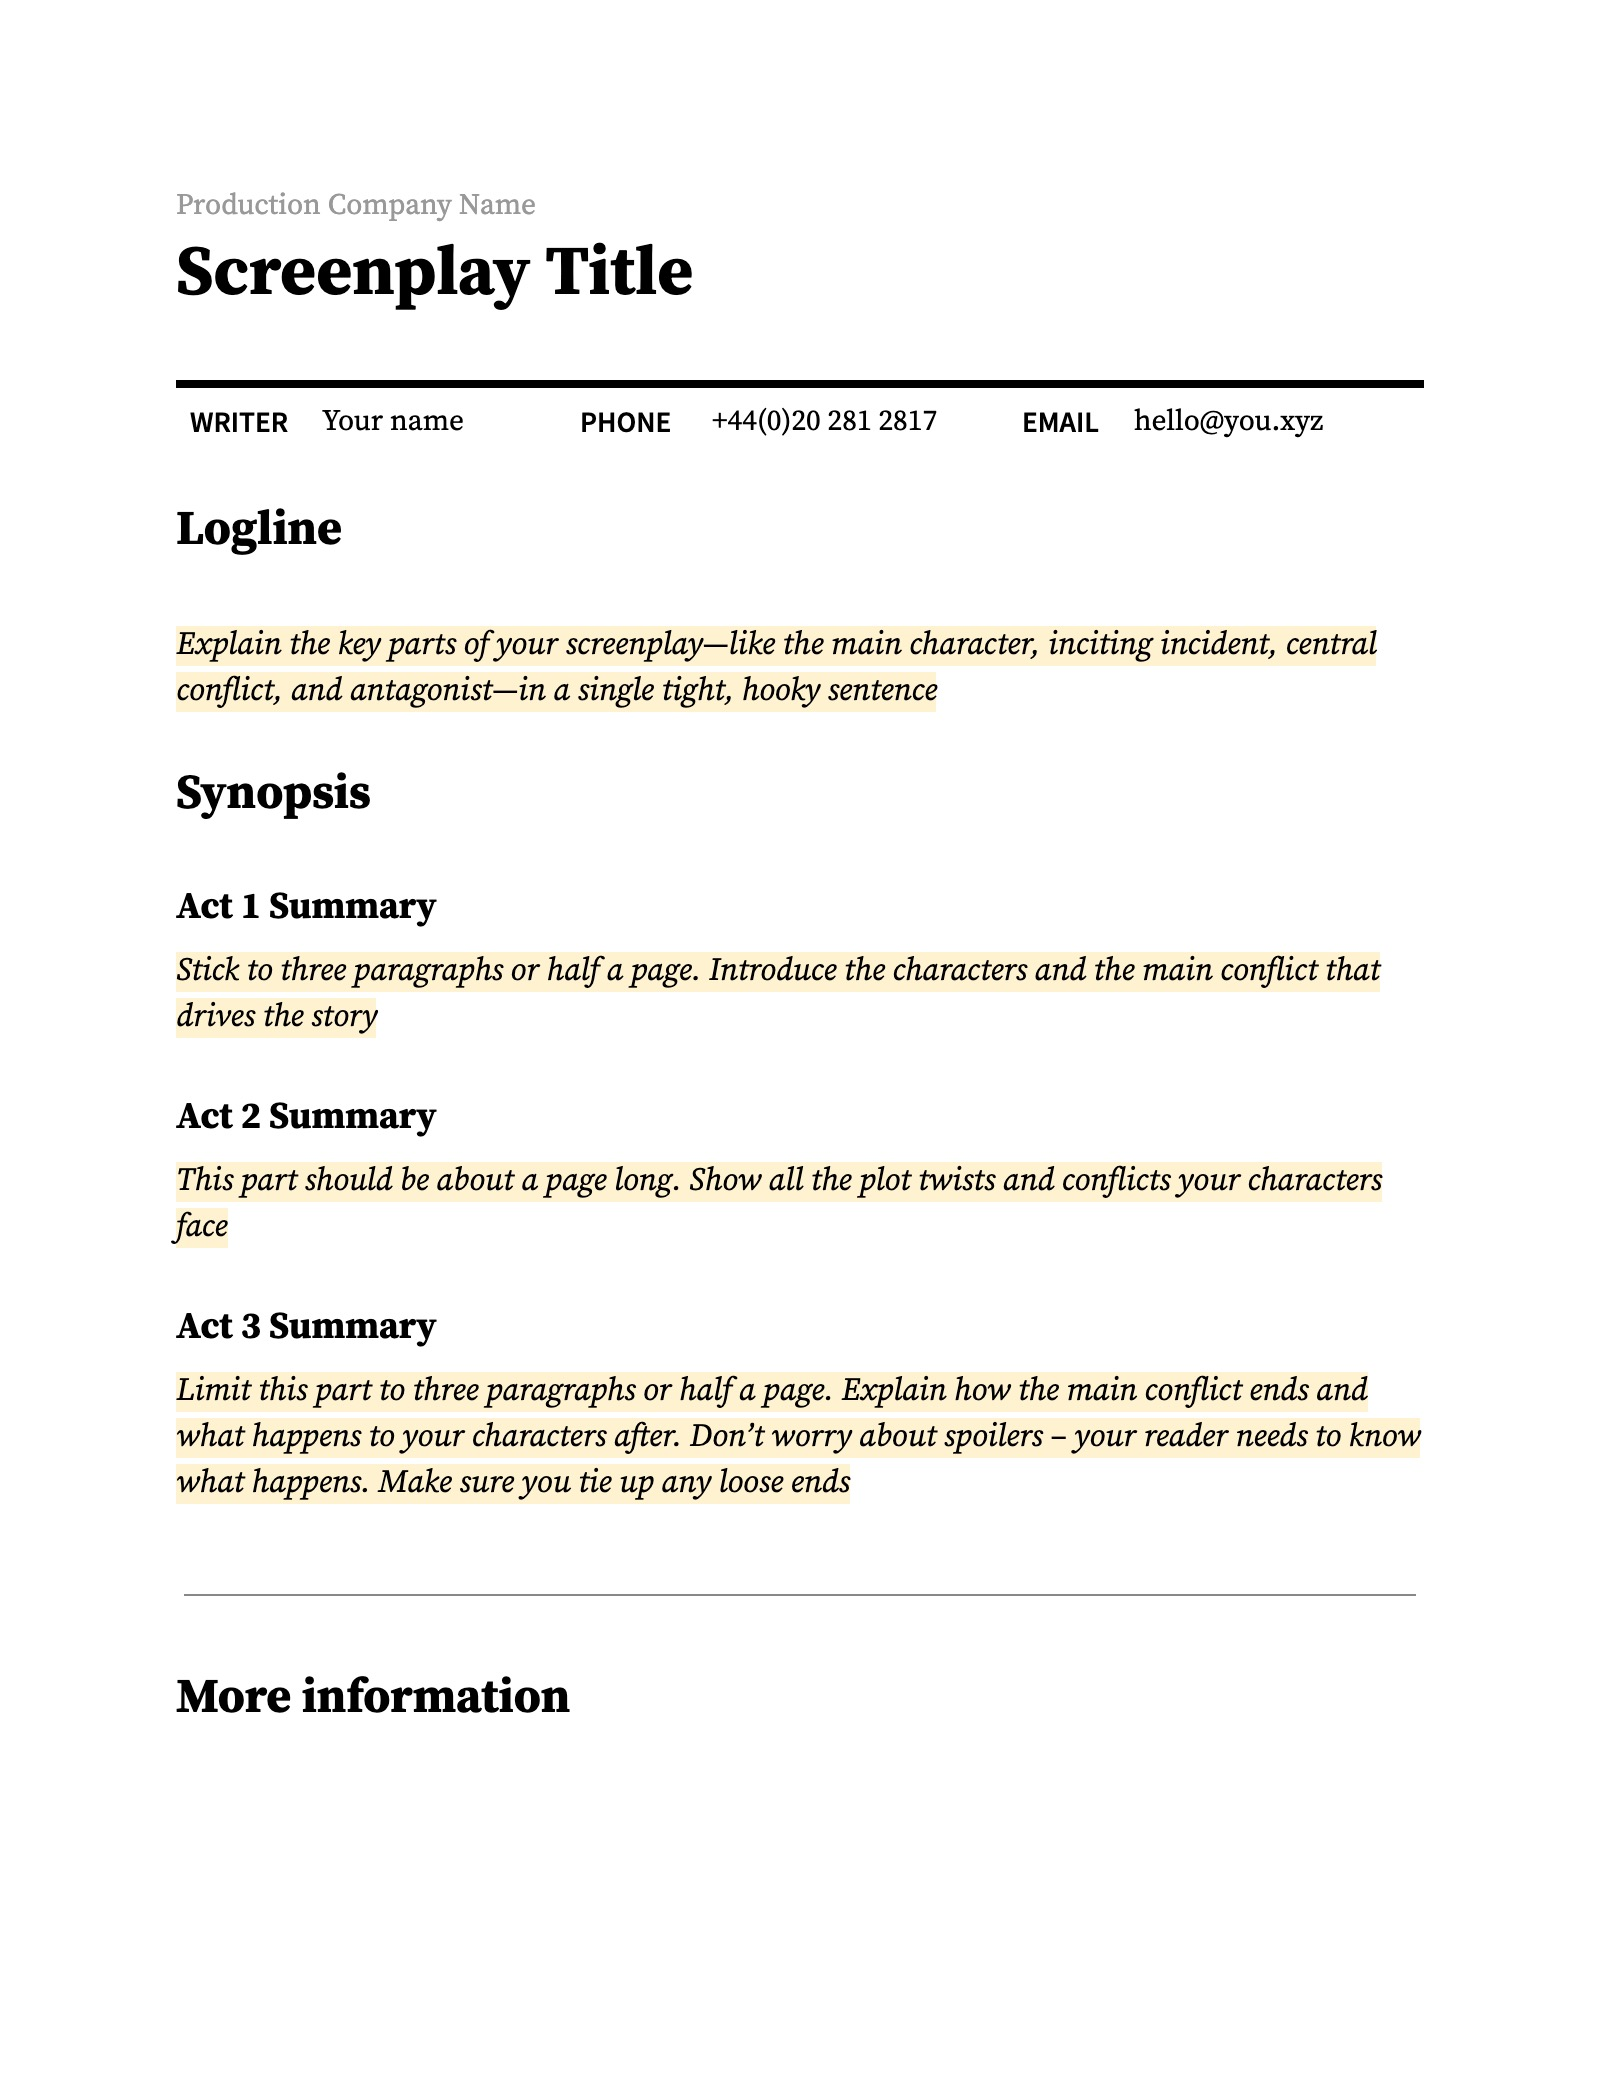 How to Write an Amazing Film Synopsis (Step-by-step Guide)  Boords